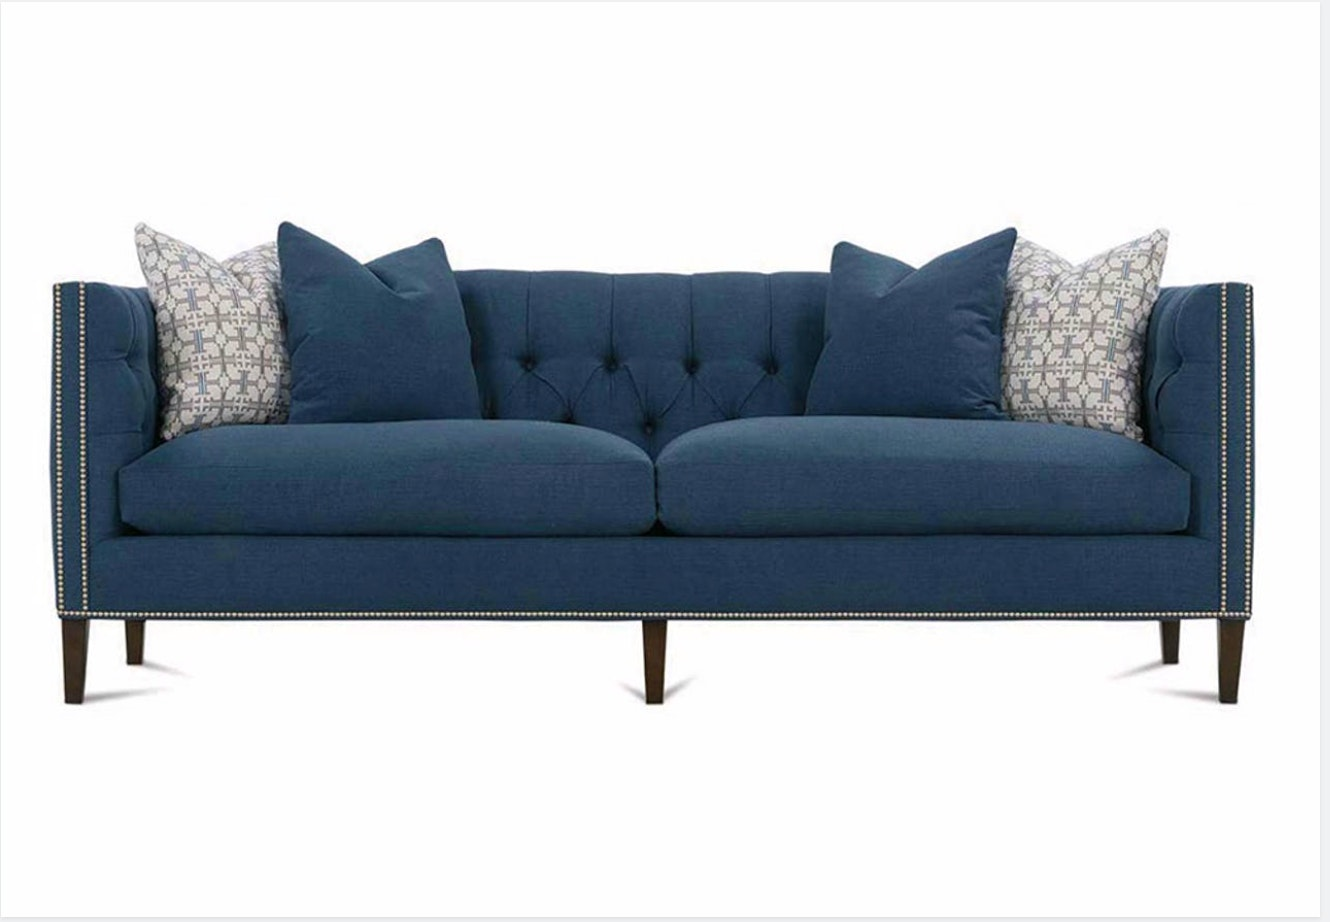 The Beck Sofa Is Stunning!